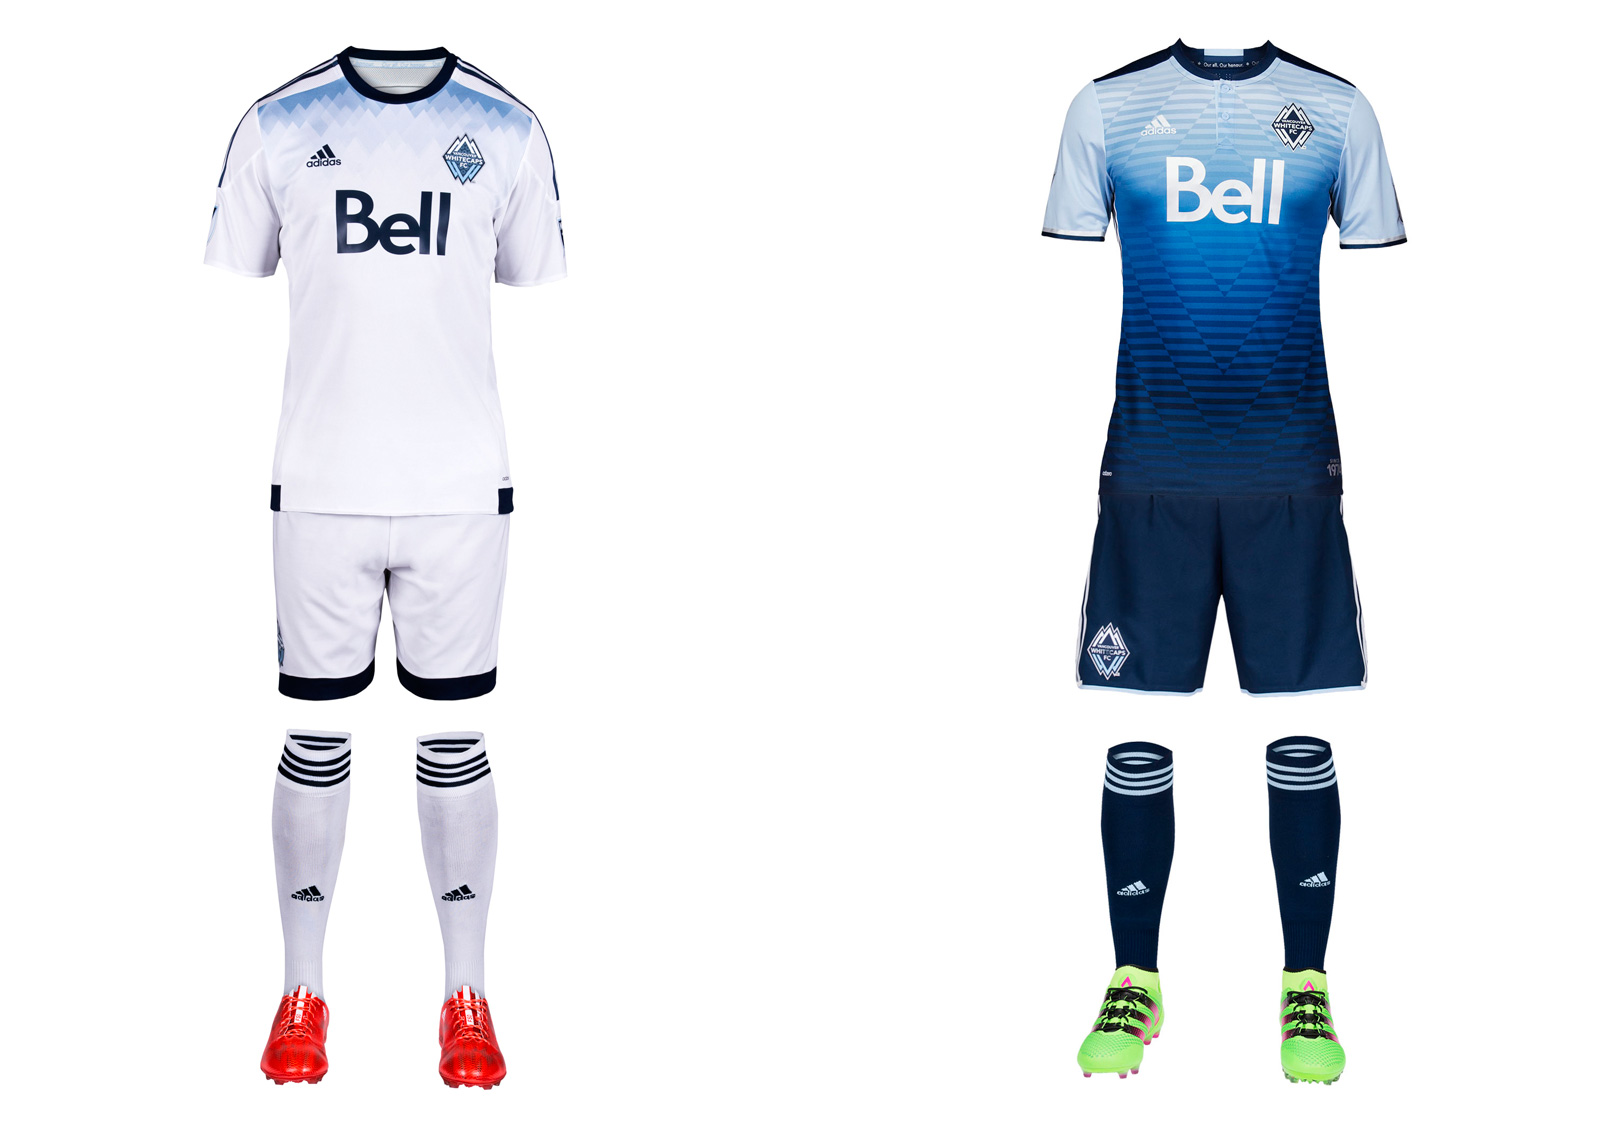 Custom design t shirts vancouver - Vancouver S New Away Uniform Is Its Most Daring Design To Date Barring The Brown Third